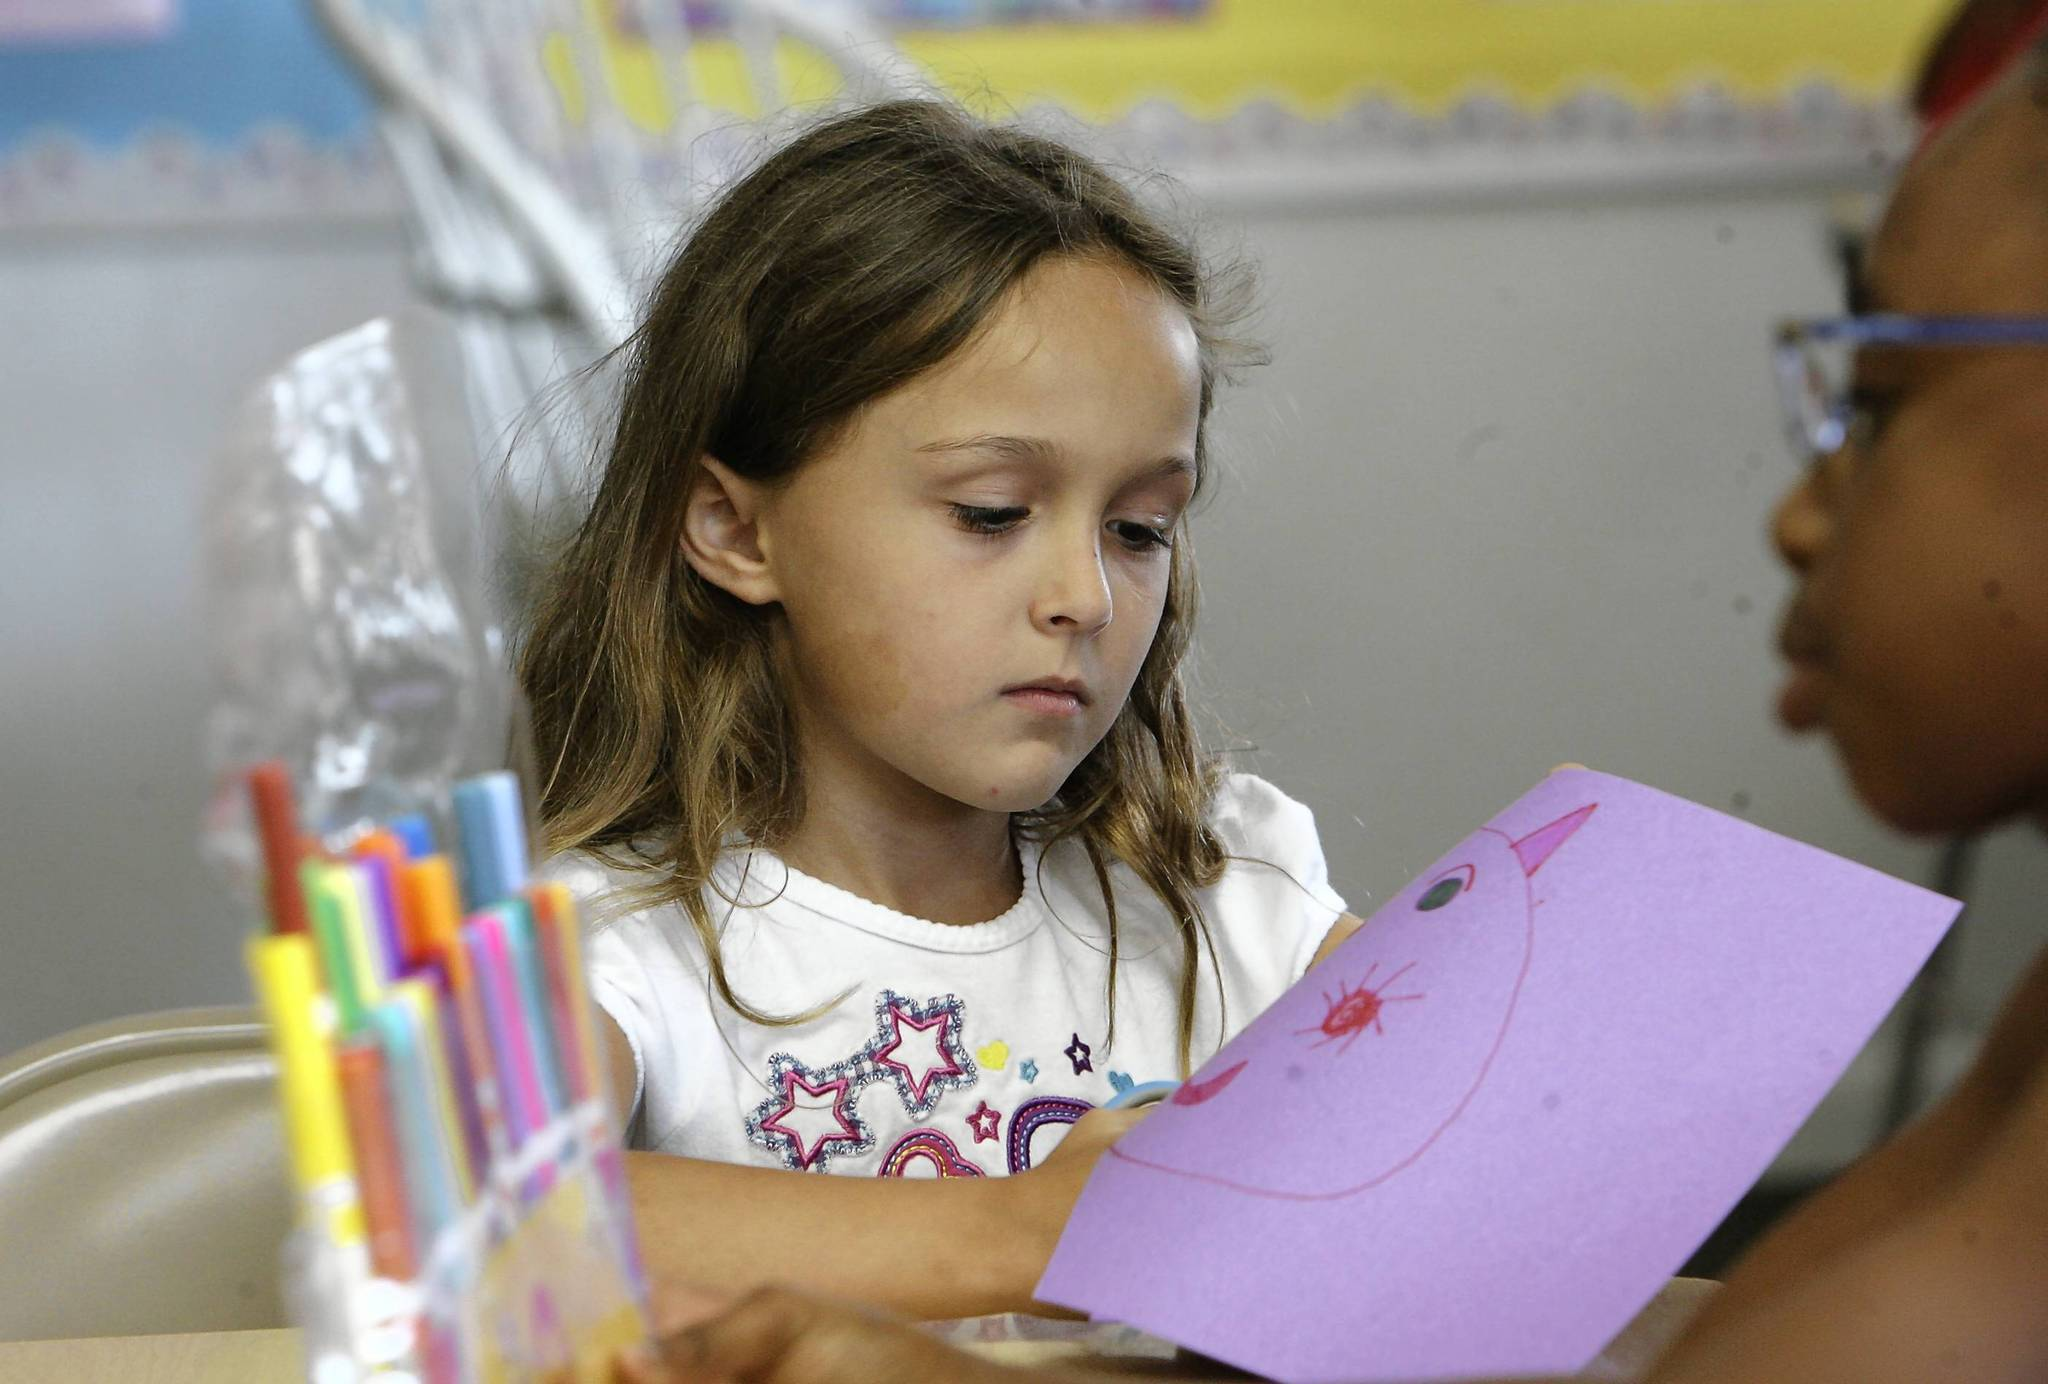 Allison Atherton, 7, creates in art class on Thursday, June 14, 2012. The new Boys and Girls Club in Lady Lake has launched it's first summer  program . The Boys & Girls recently opened its door at the First Baptist Church of Lady Lake on CR 466. (Tom Benitez/Orlando Sentinel